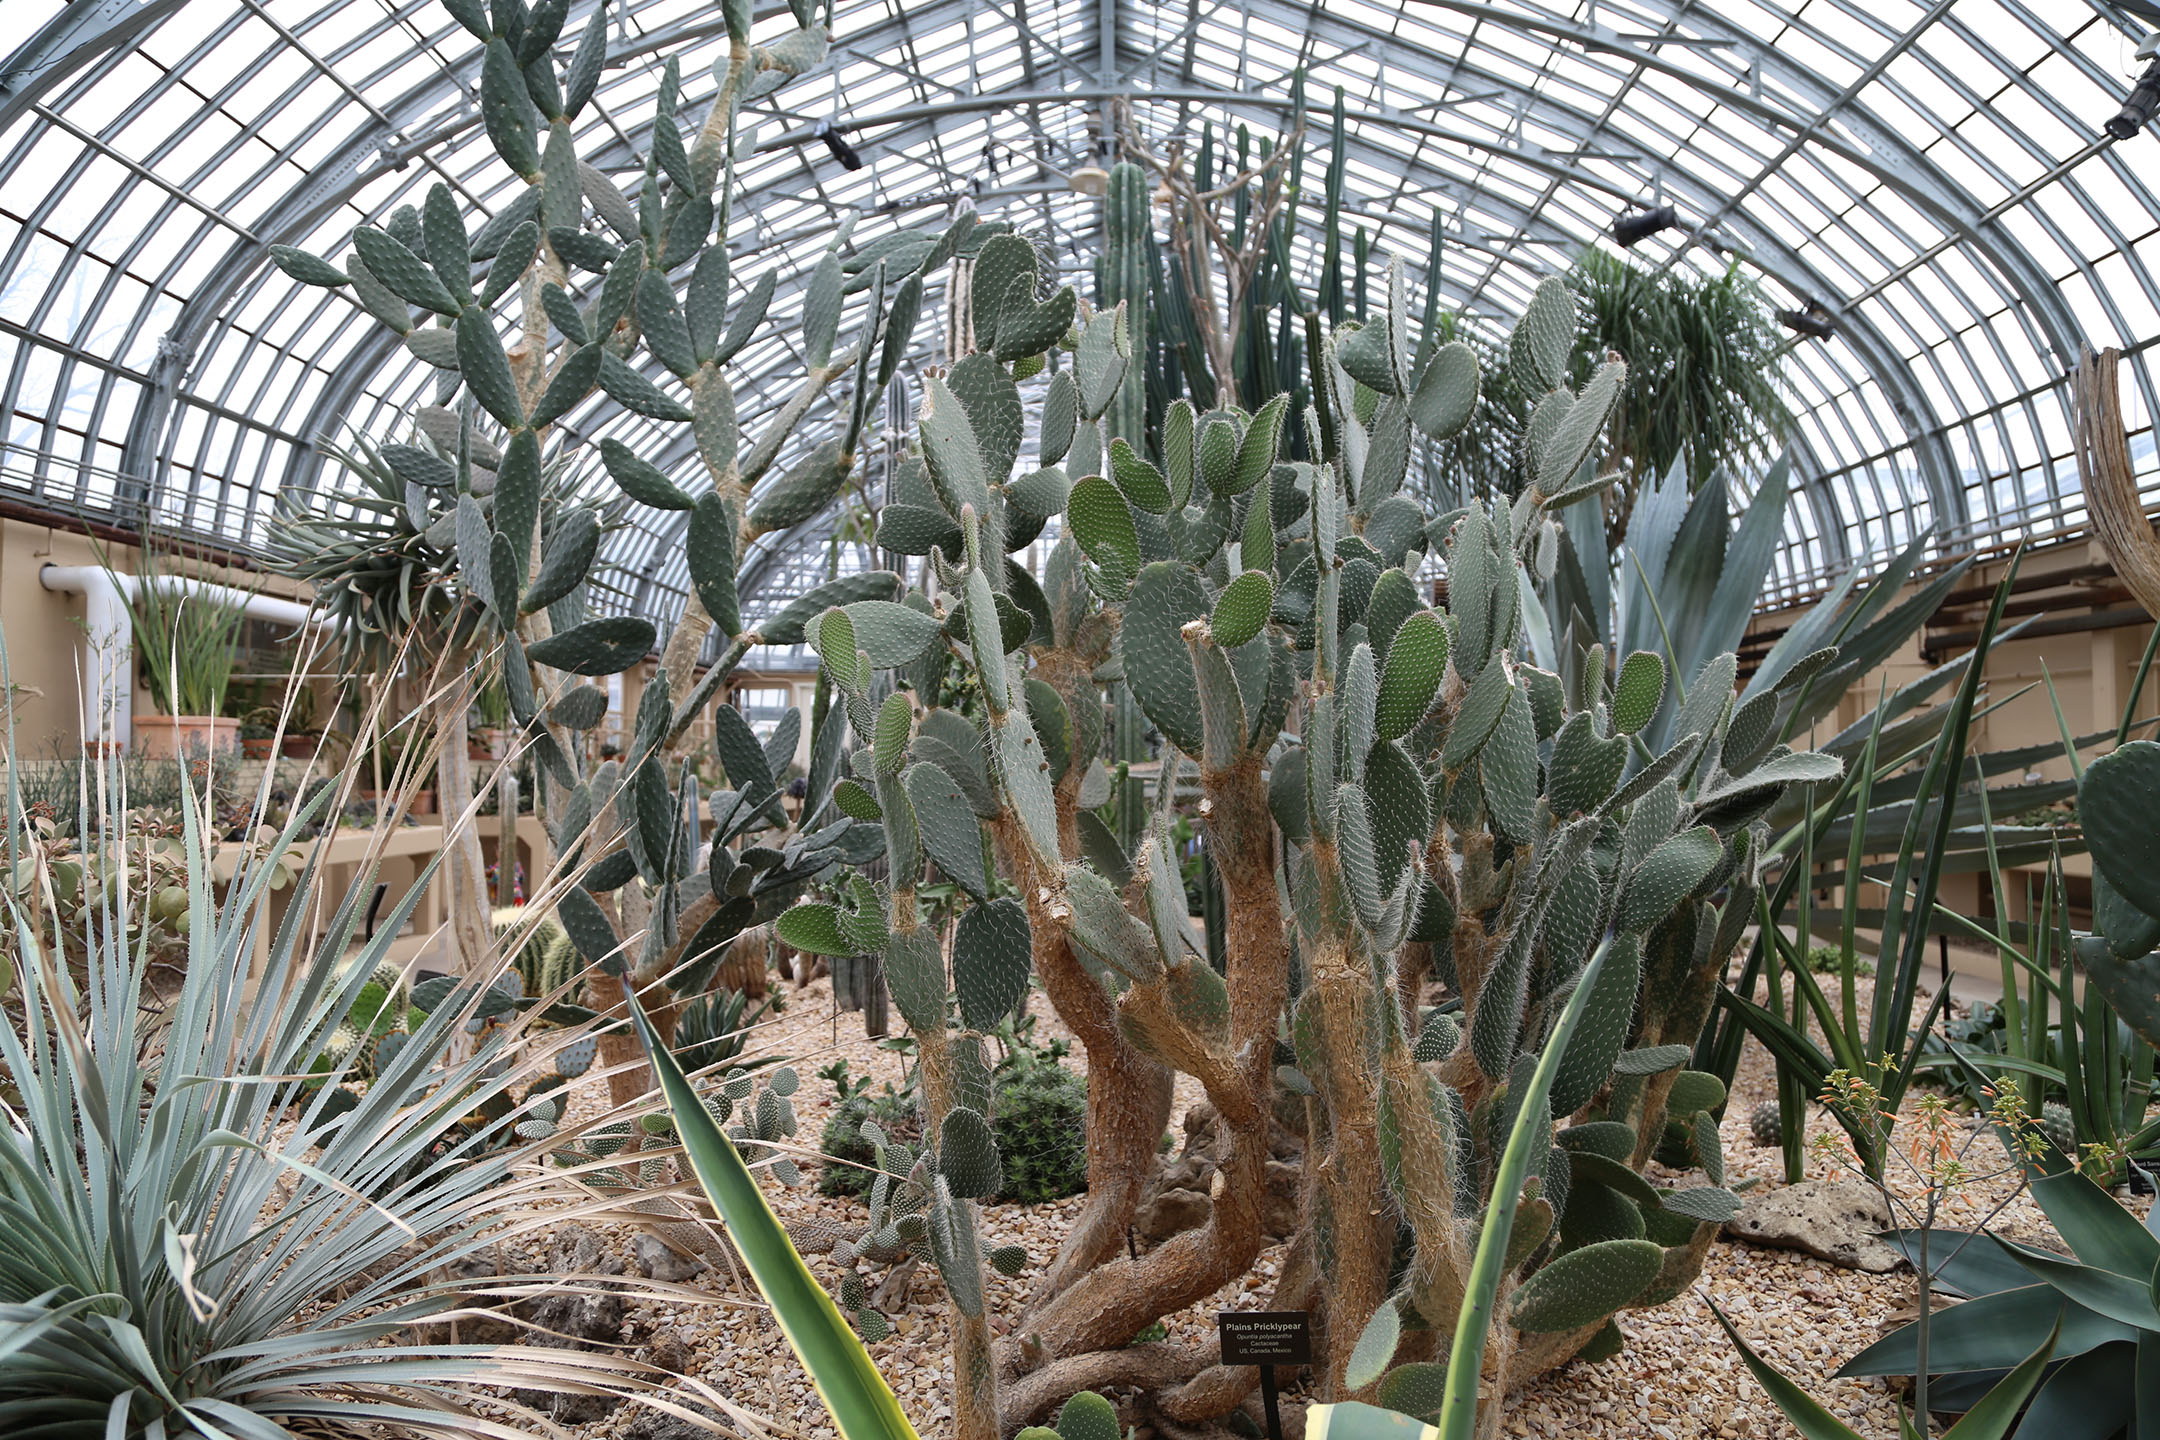 The cacti families look spectacular under the glass ceiling!